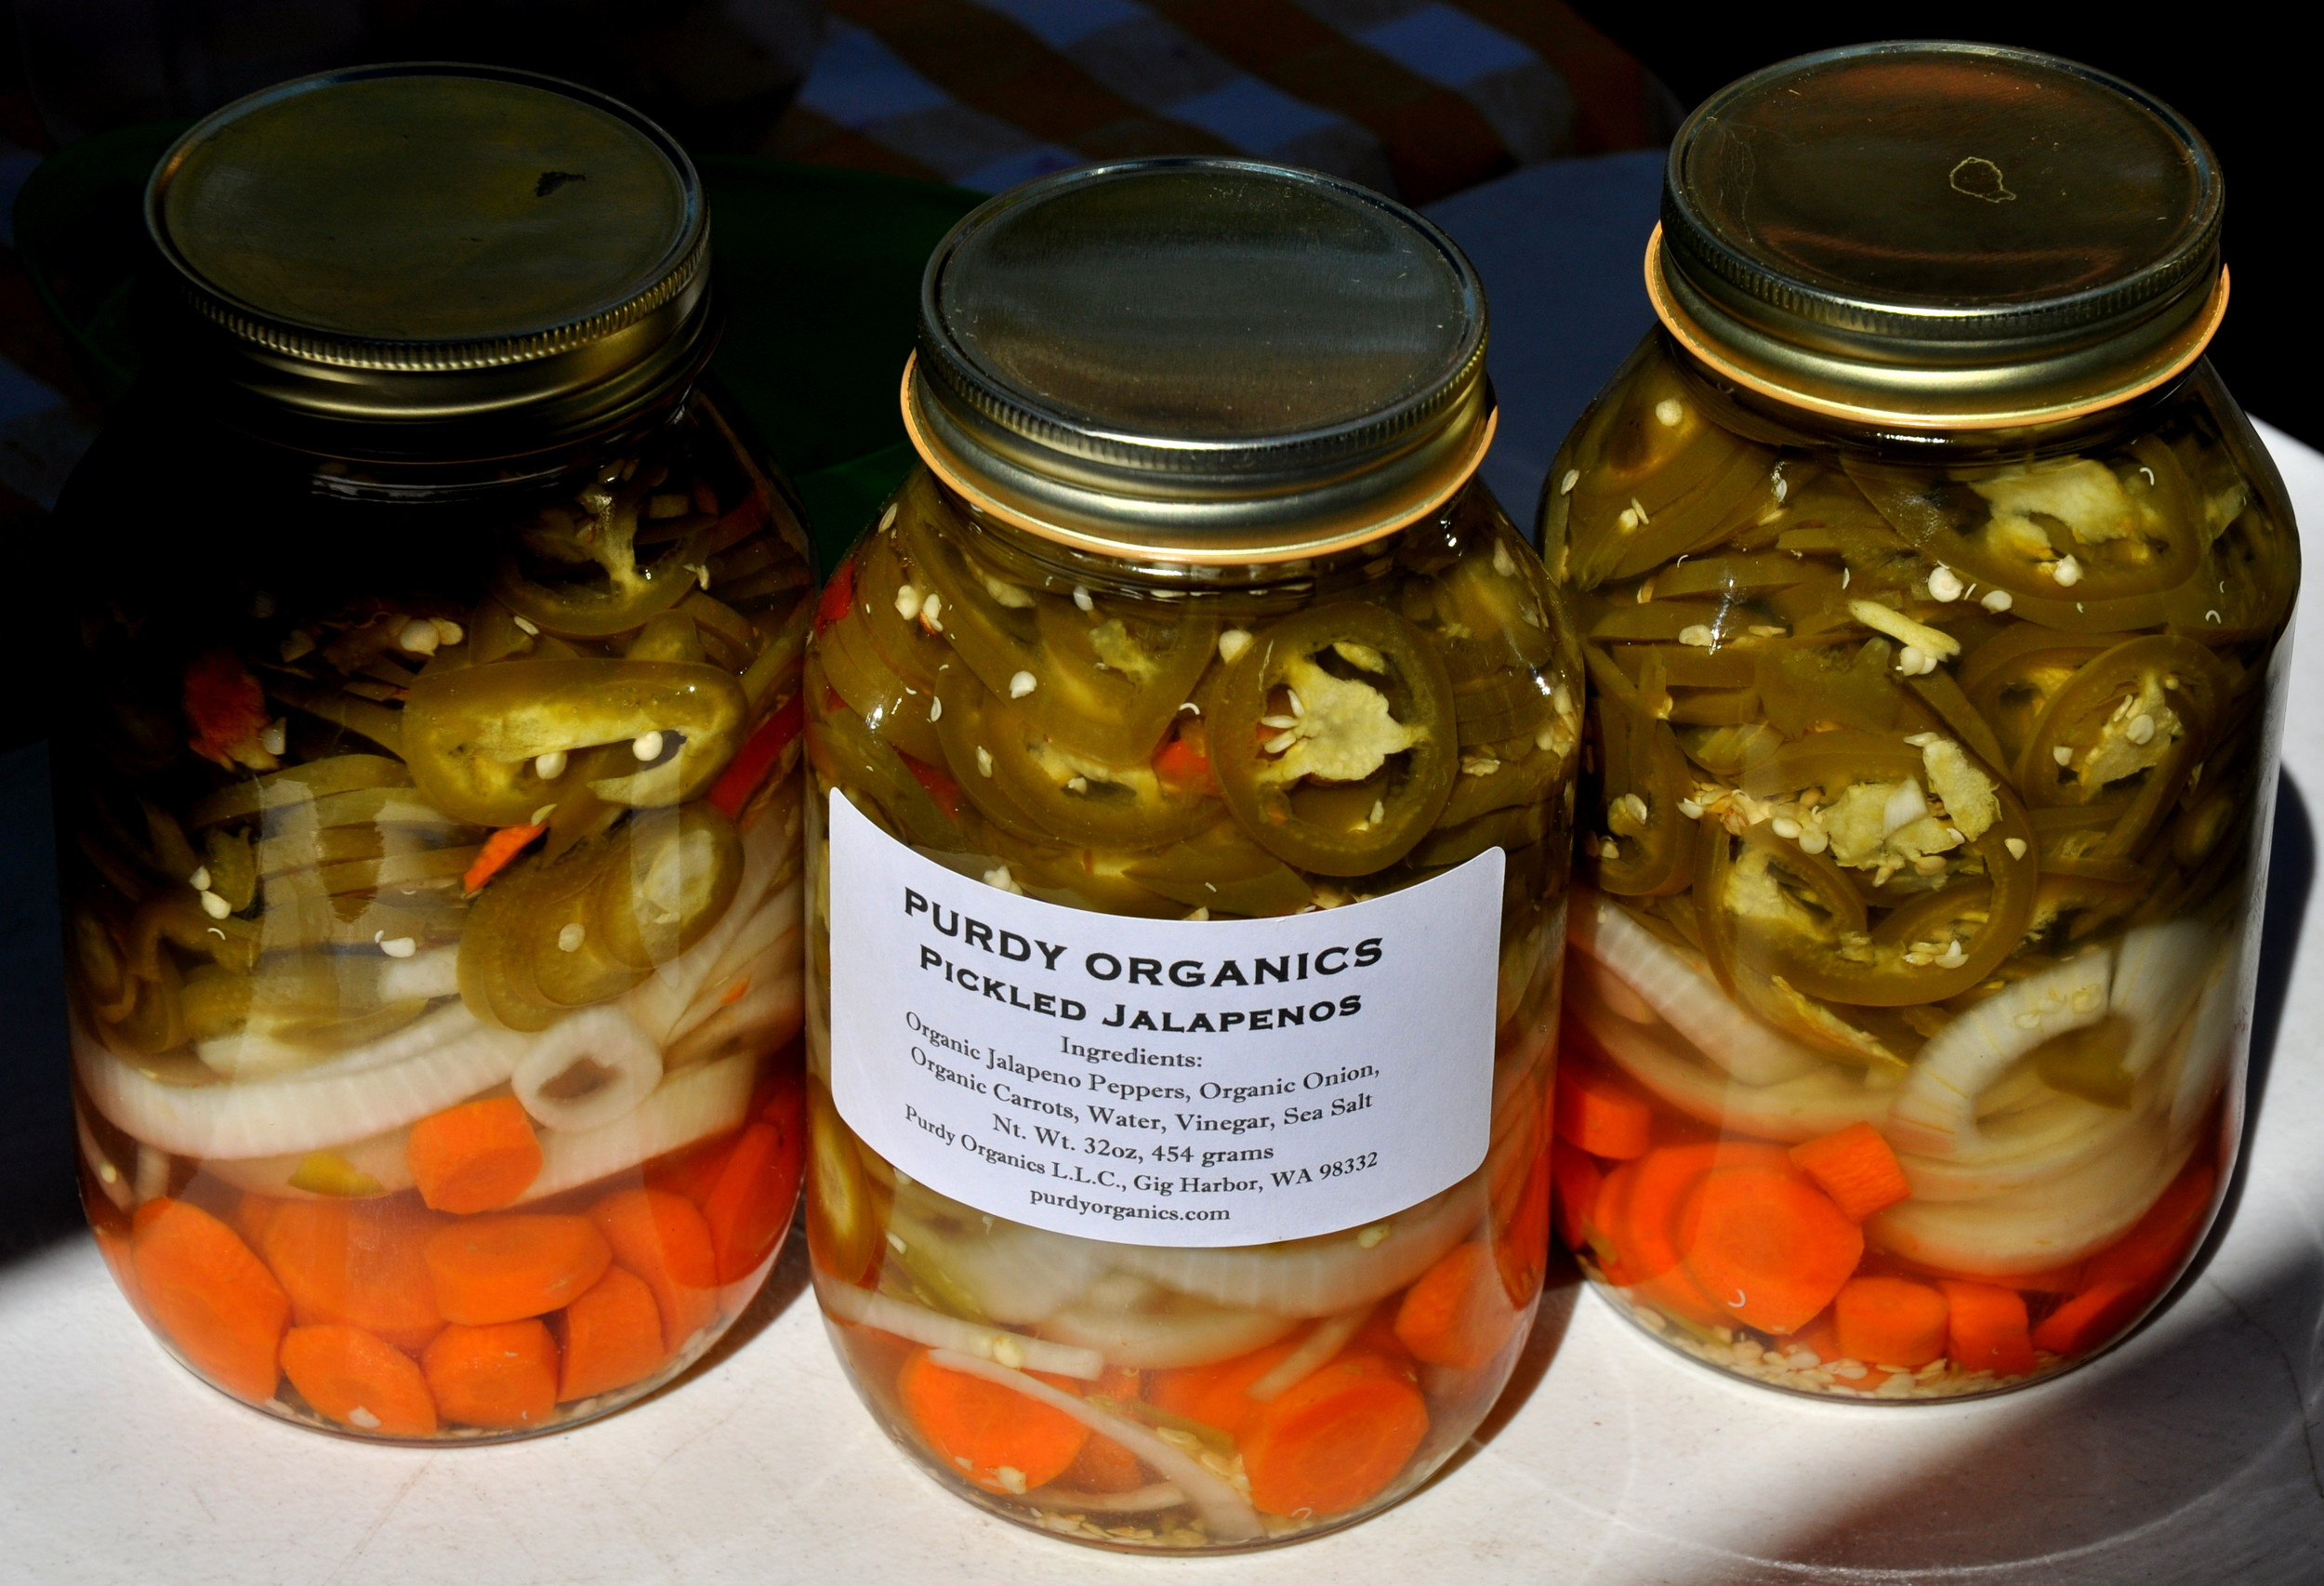 Pickled jalapeños peppers from Purdy Pickle. Photo copyright 2013 by Zachary D. Lyons.